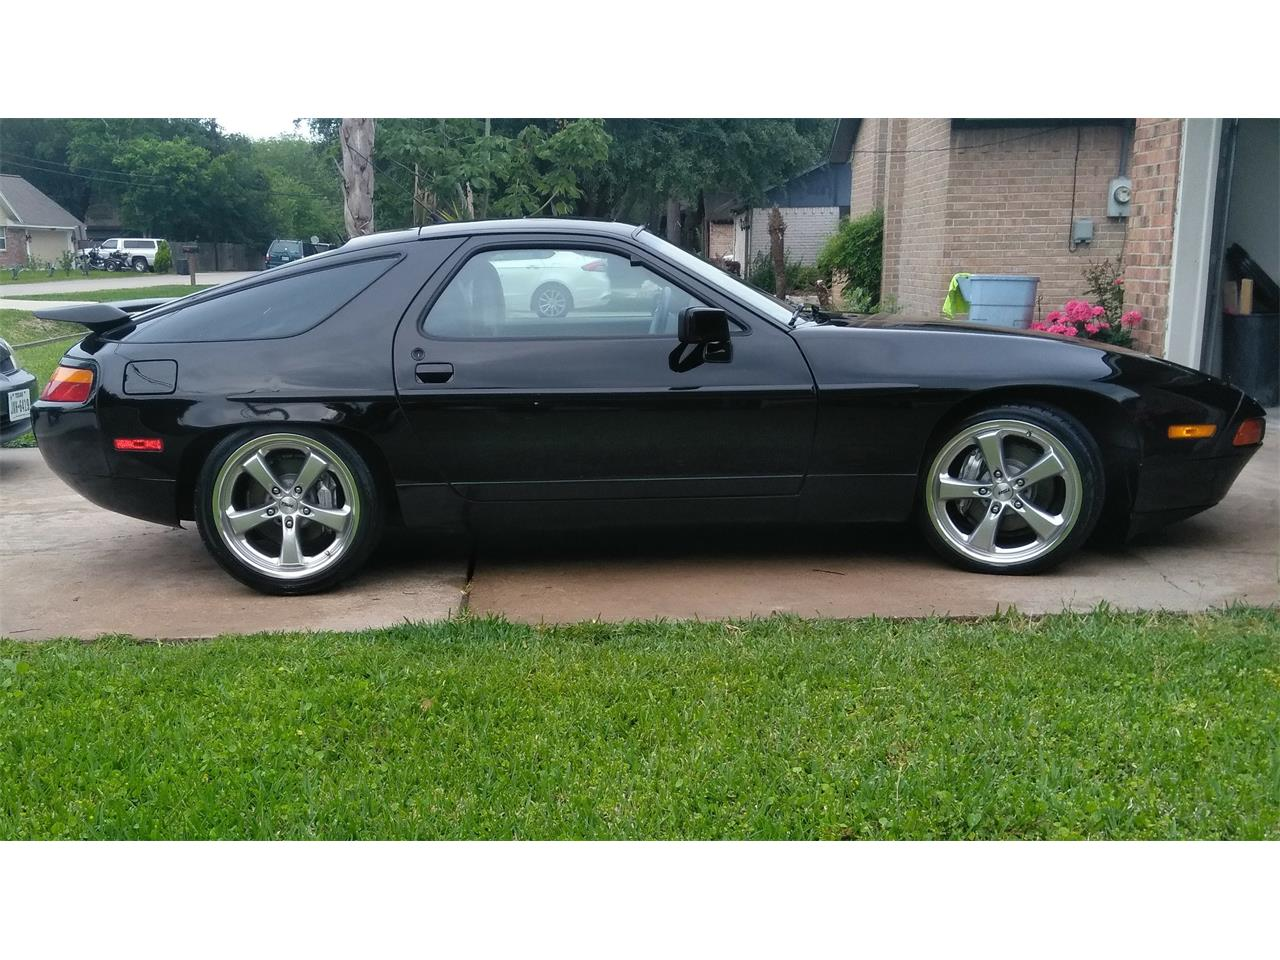 1990 Porsche 928S4 Coupe for sale in Dickinson, TX